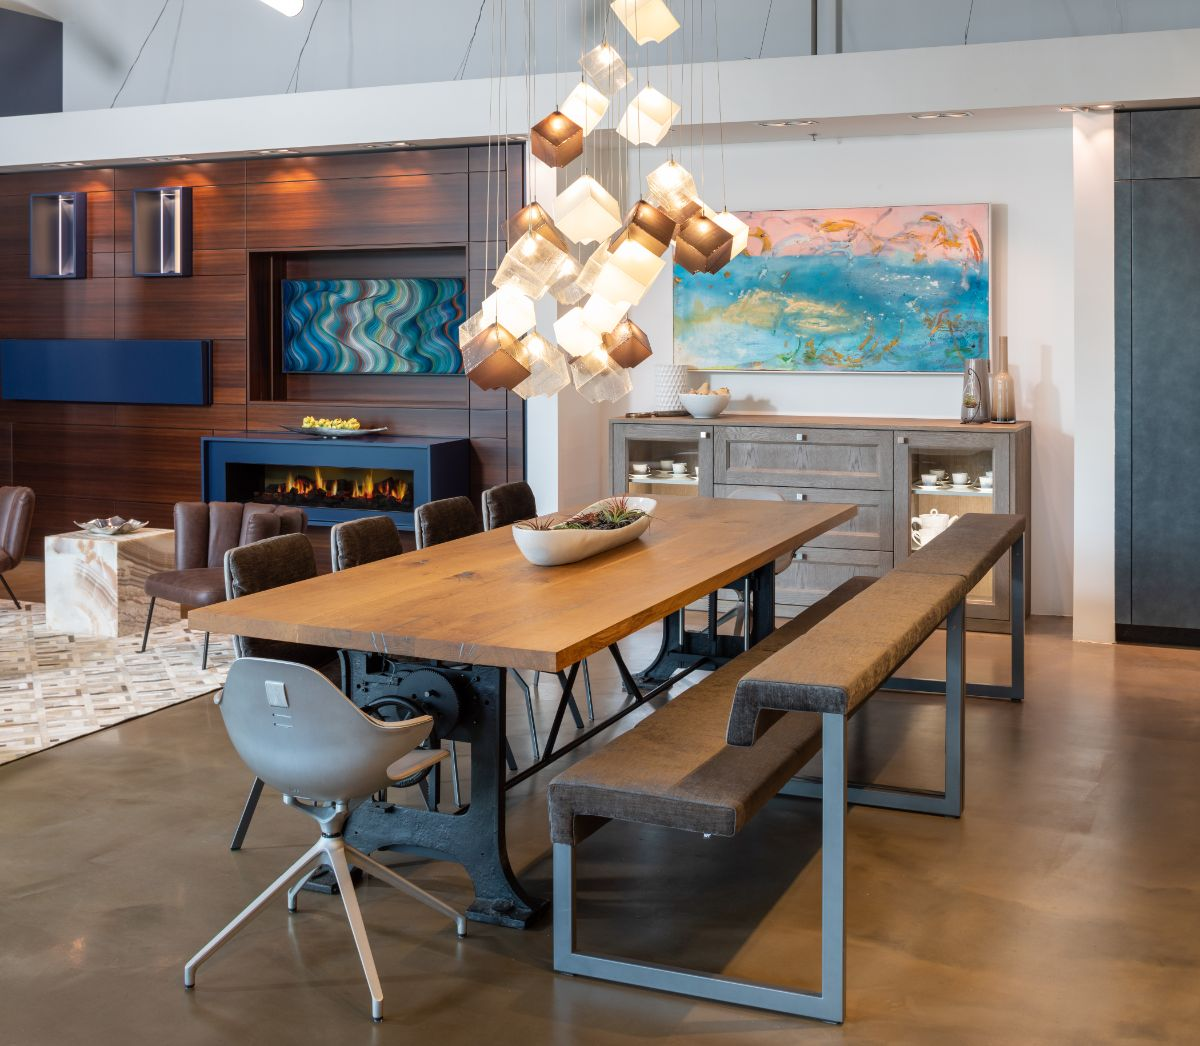 shakuff multiple cubes lighting fixture featured in the eggersmann kitchen display in the houston showroom